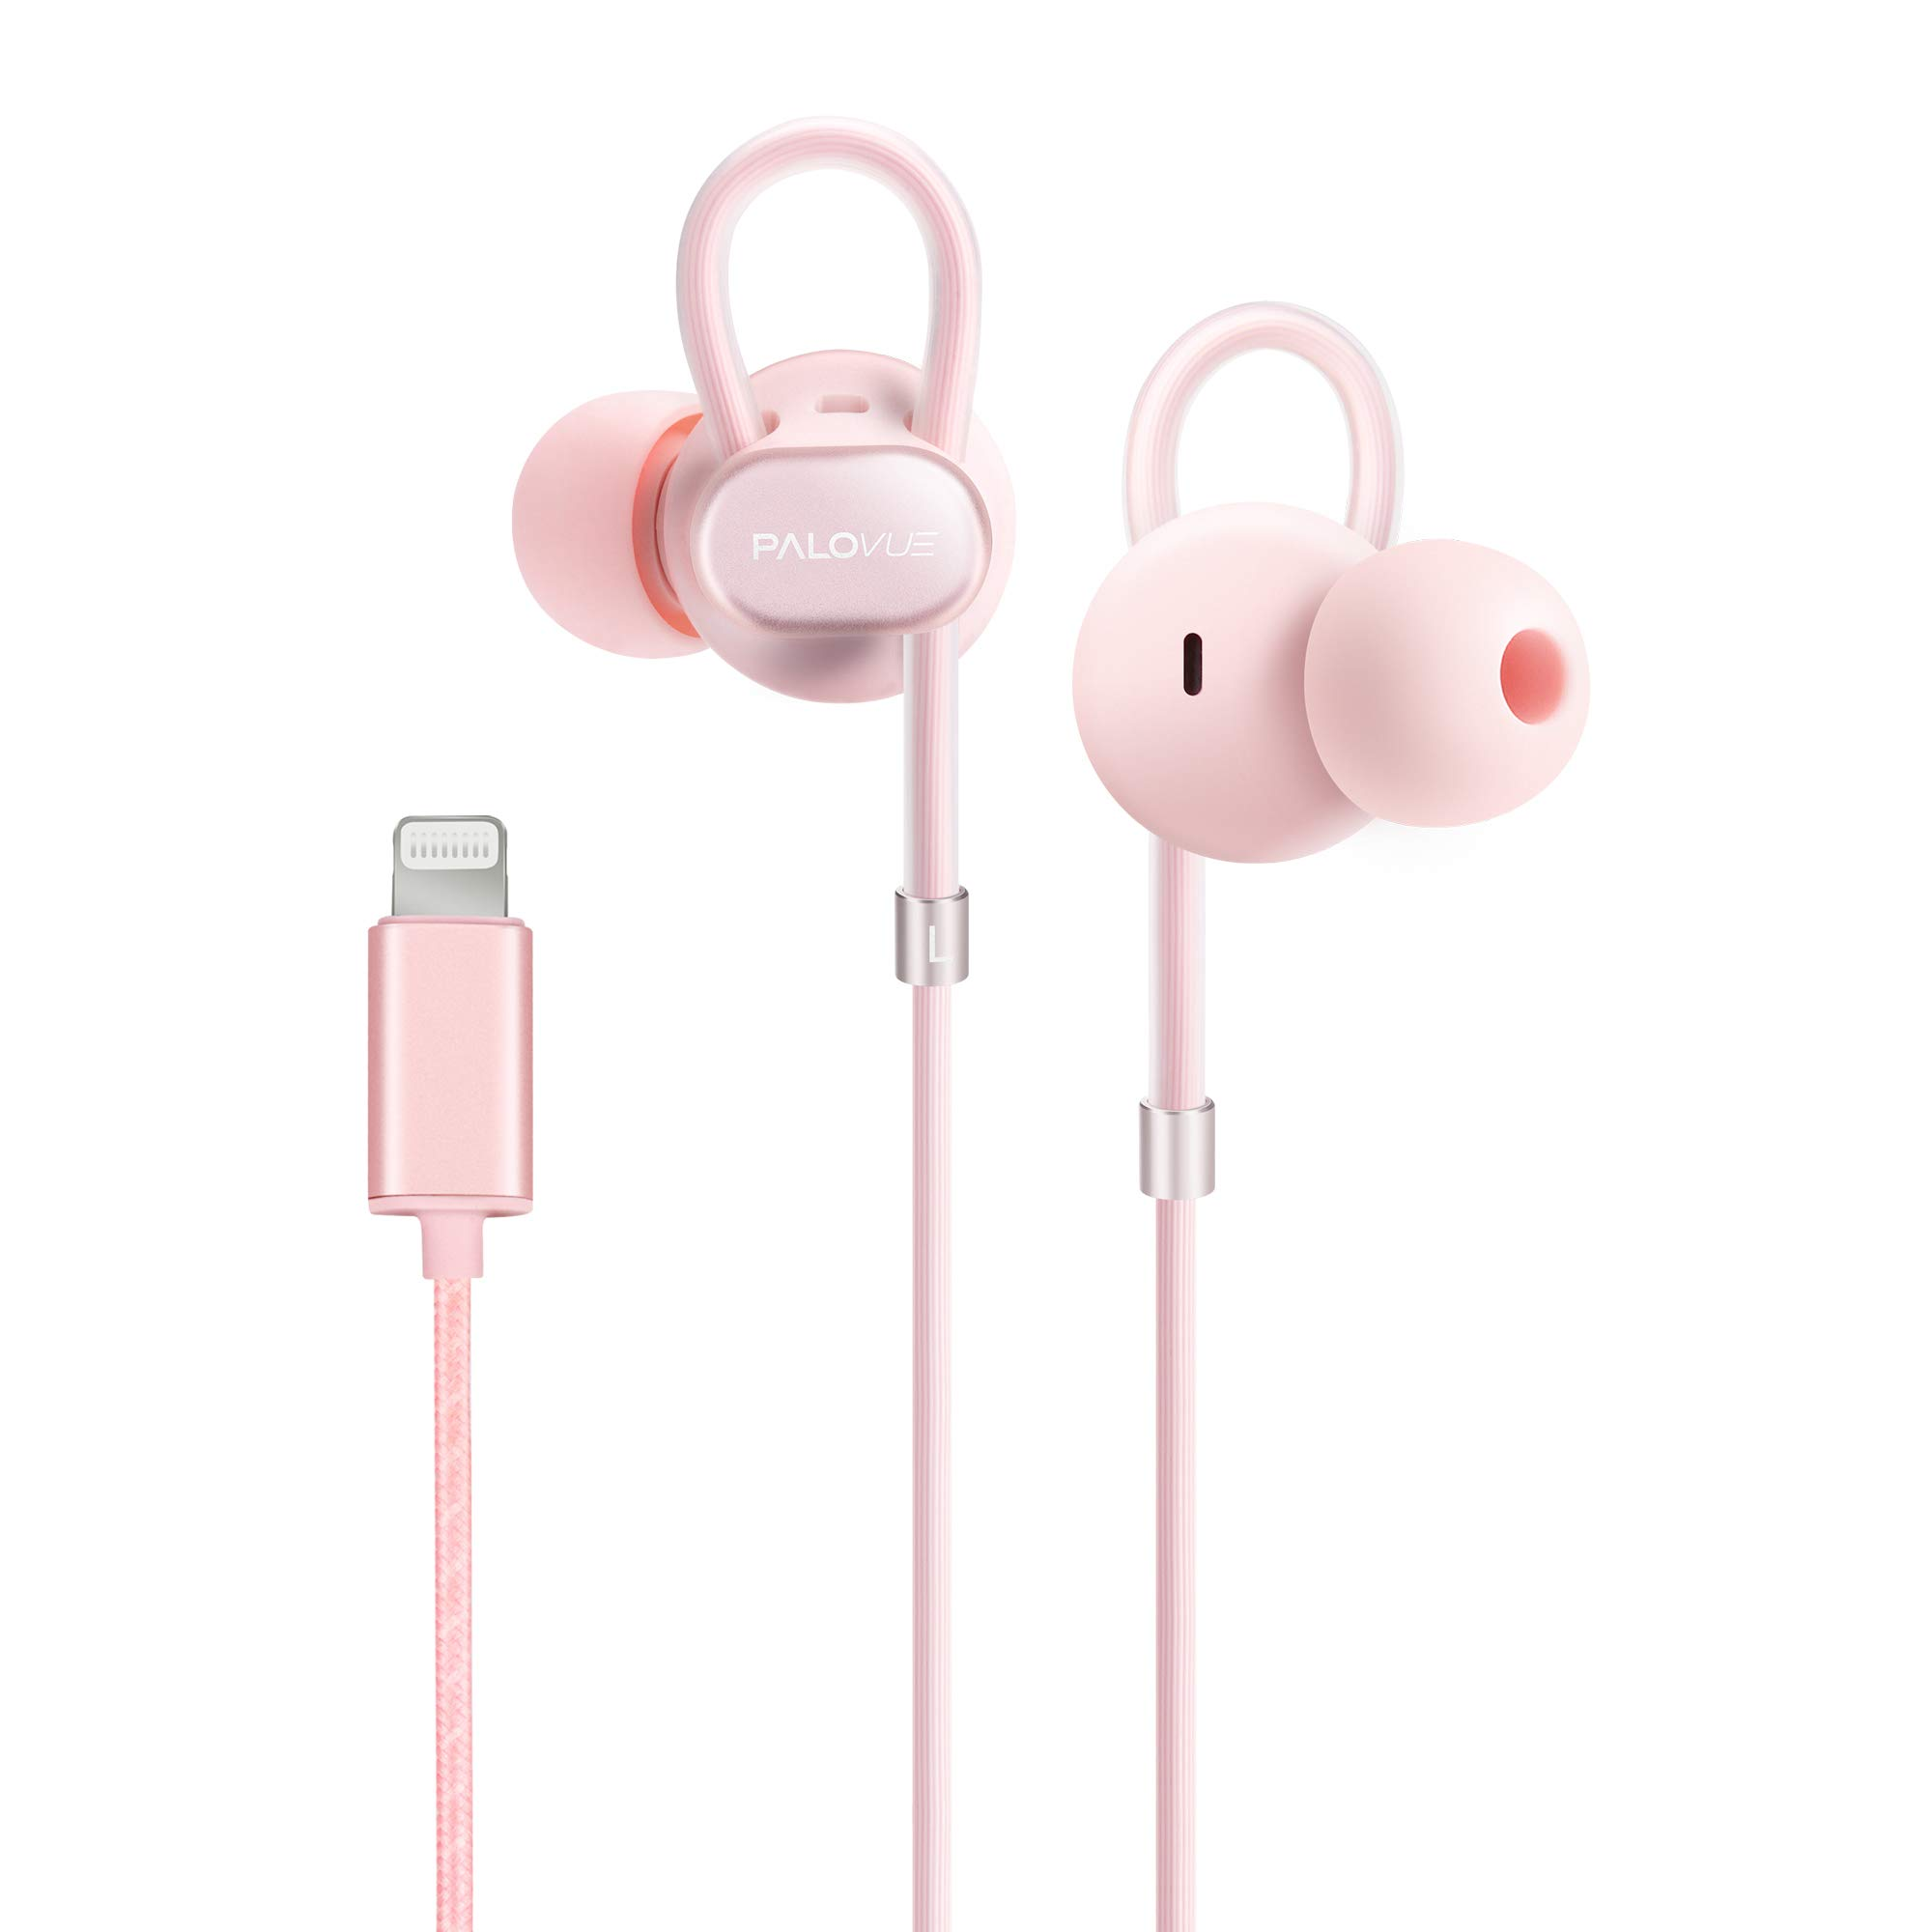 Amazon Com Palovue Lightning Headphones Earbuds Earphones With Microphone Controller Mfi Certified Noise Isolation Compatible Iphone 11 Pro Max Iphone X Xs Max Xr Iphone 8 P Iphone 7 P Neoflowcolor Pink Electronics